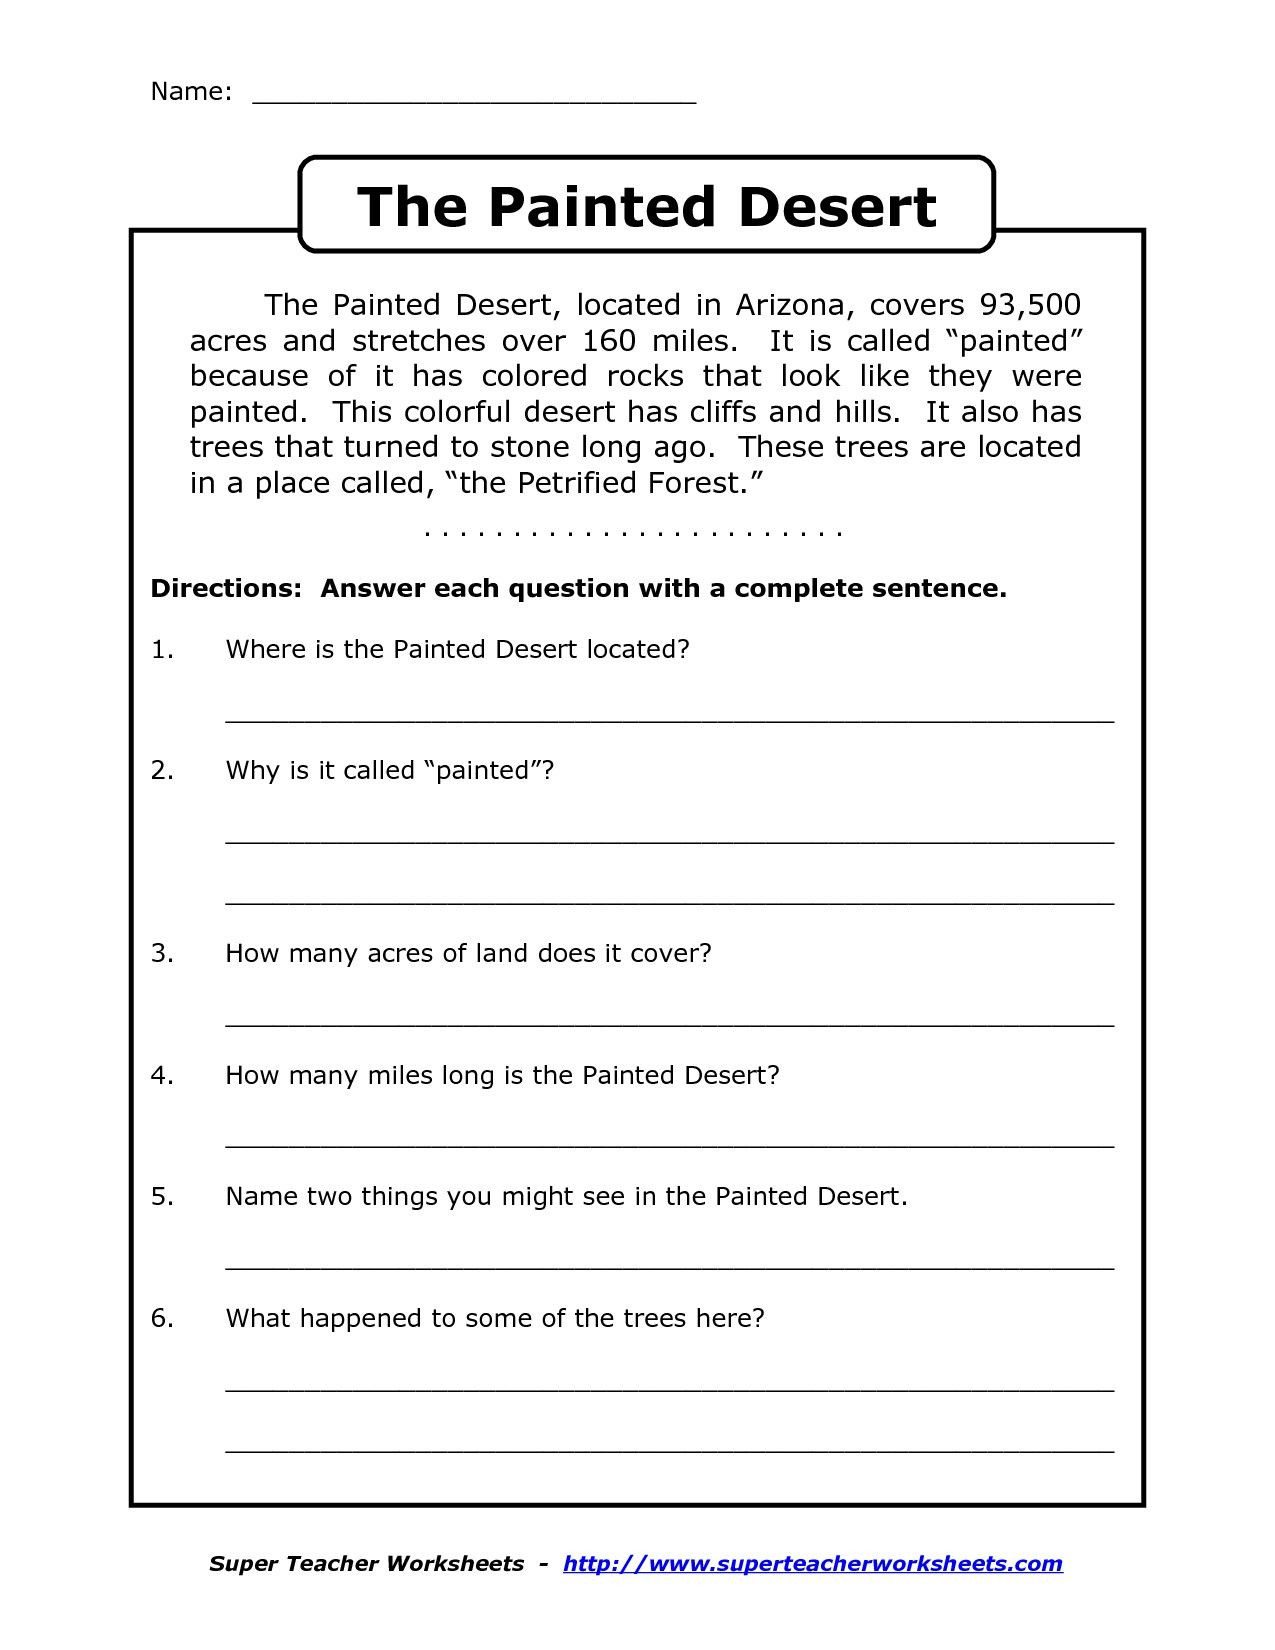 Third Grade Editing Worksheets Prehension Worksheet for 1st Grade Y2 P3 the Painted